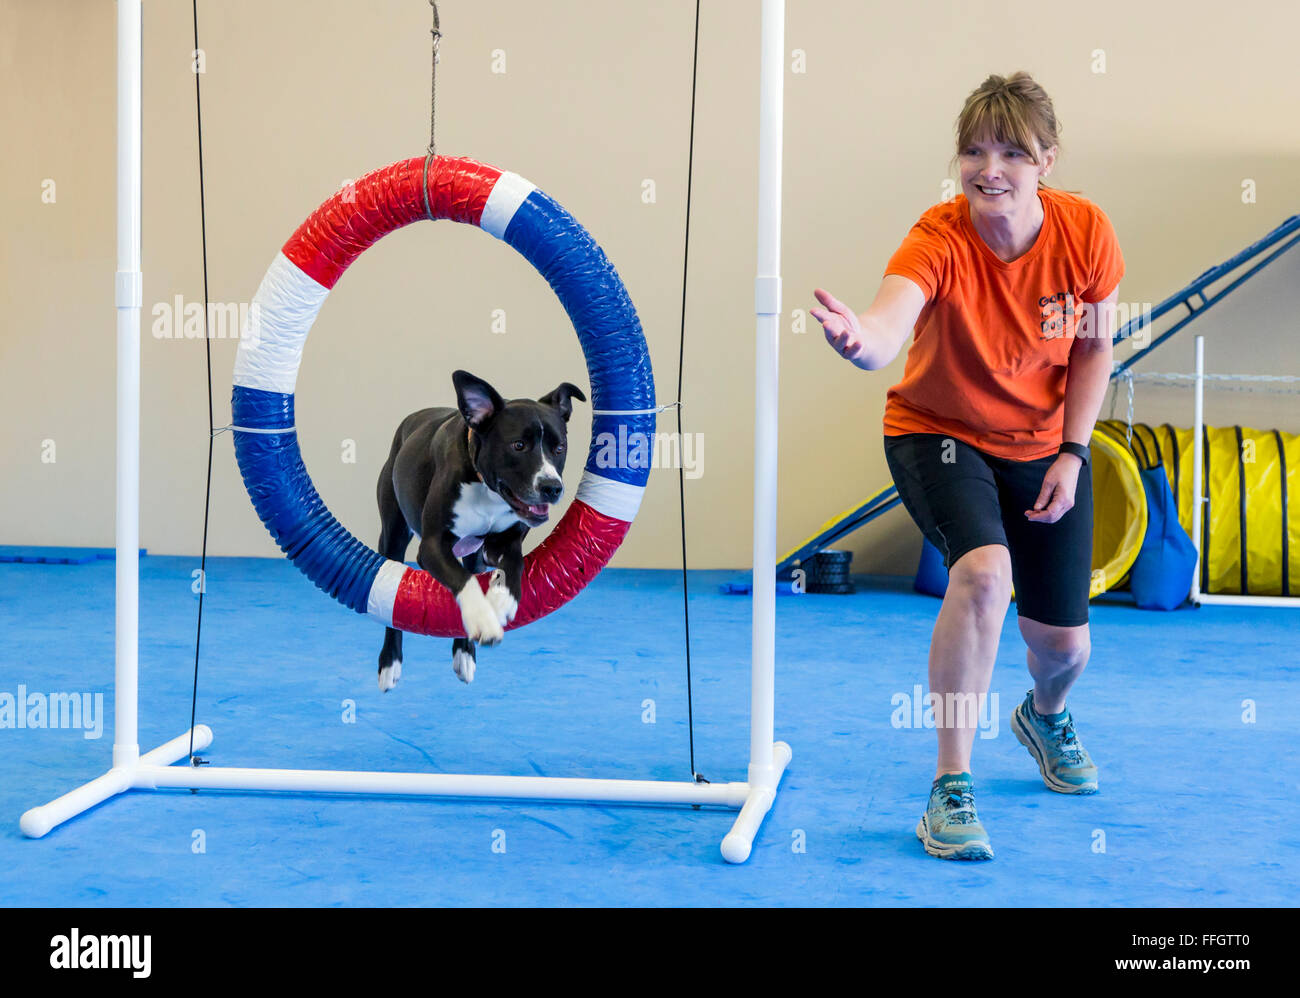 Professional female dog handler training dog to jump through hoop obstacle - Stock Image